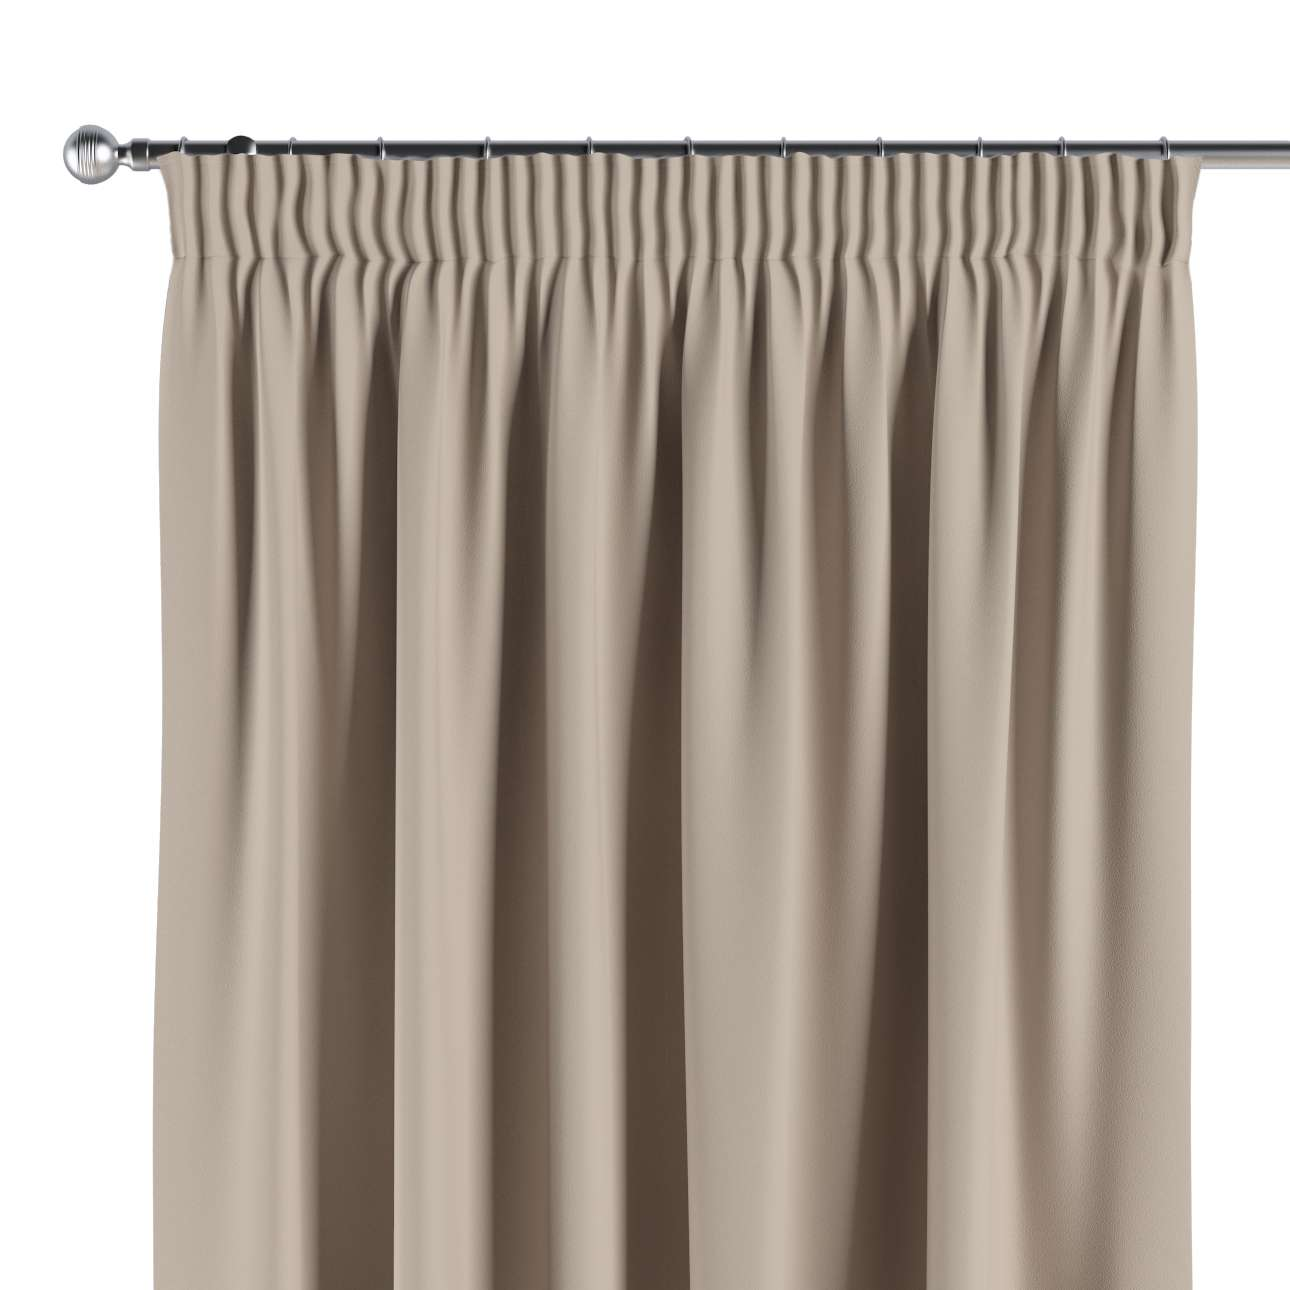 How Do I Measure For Pencil Pleat Curtains Curtain Menzilperde Net